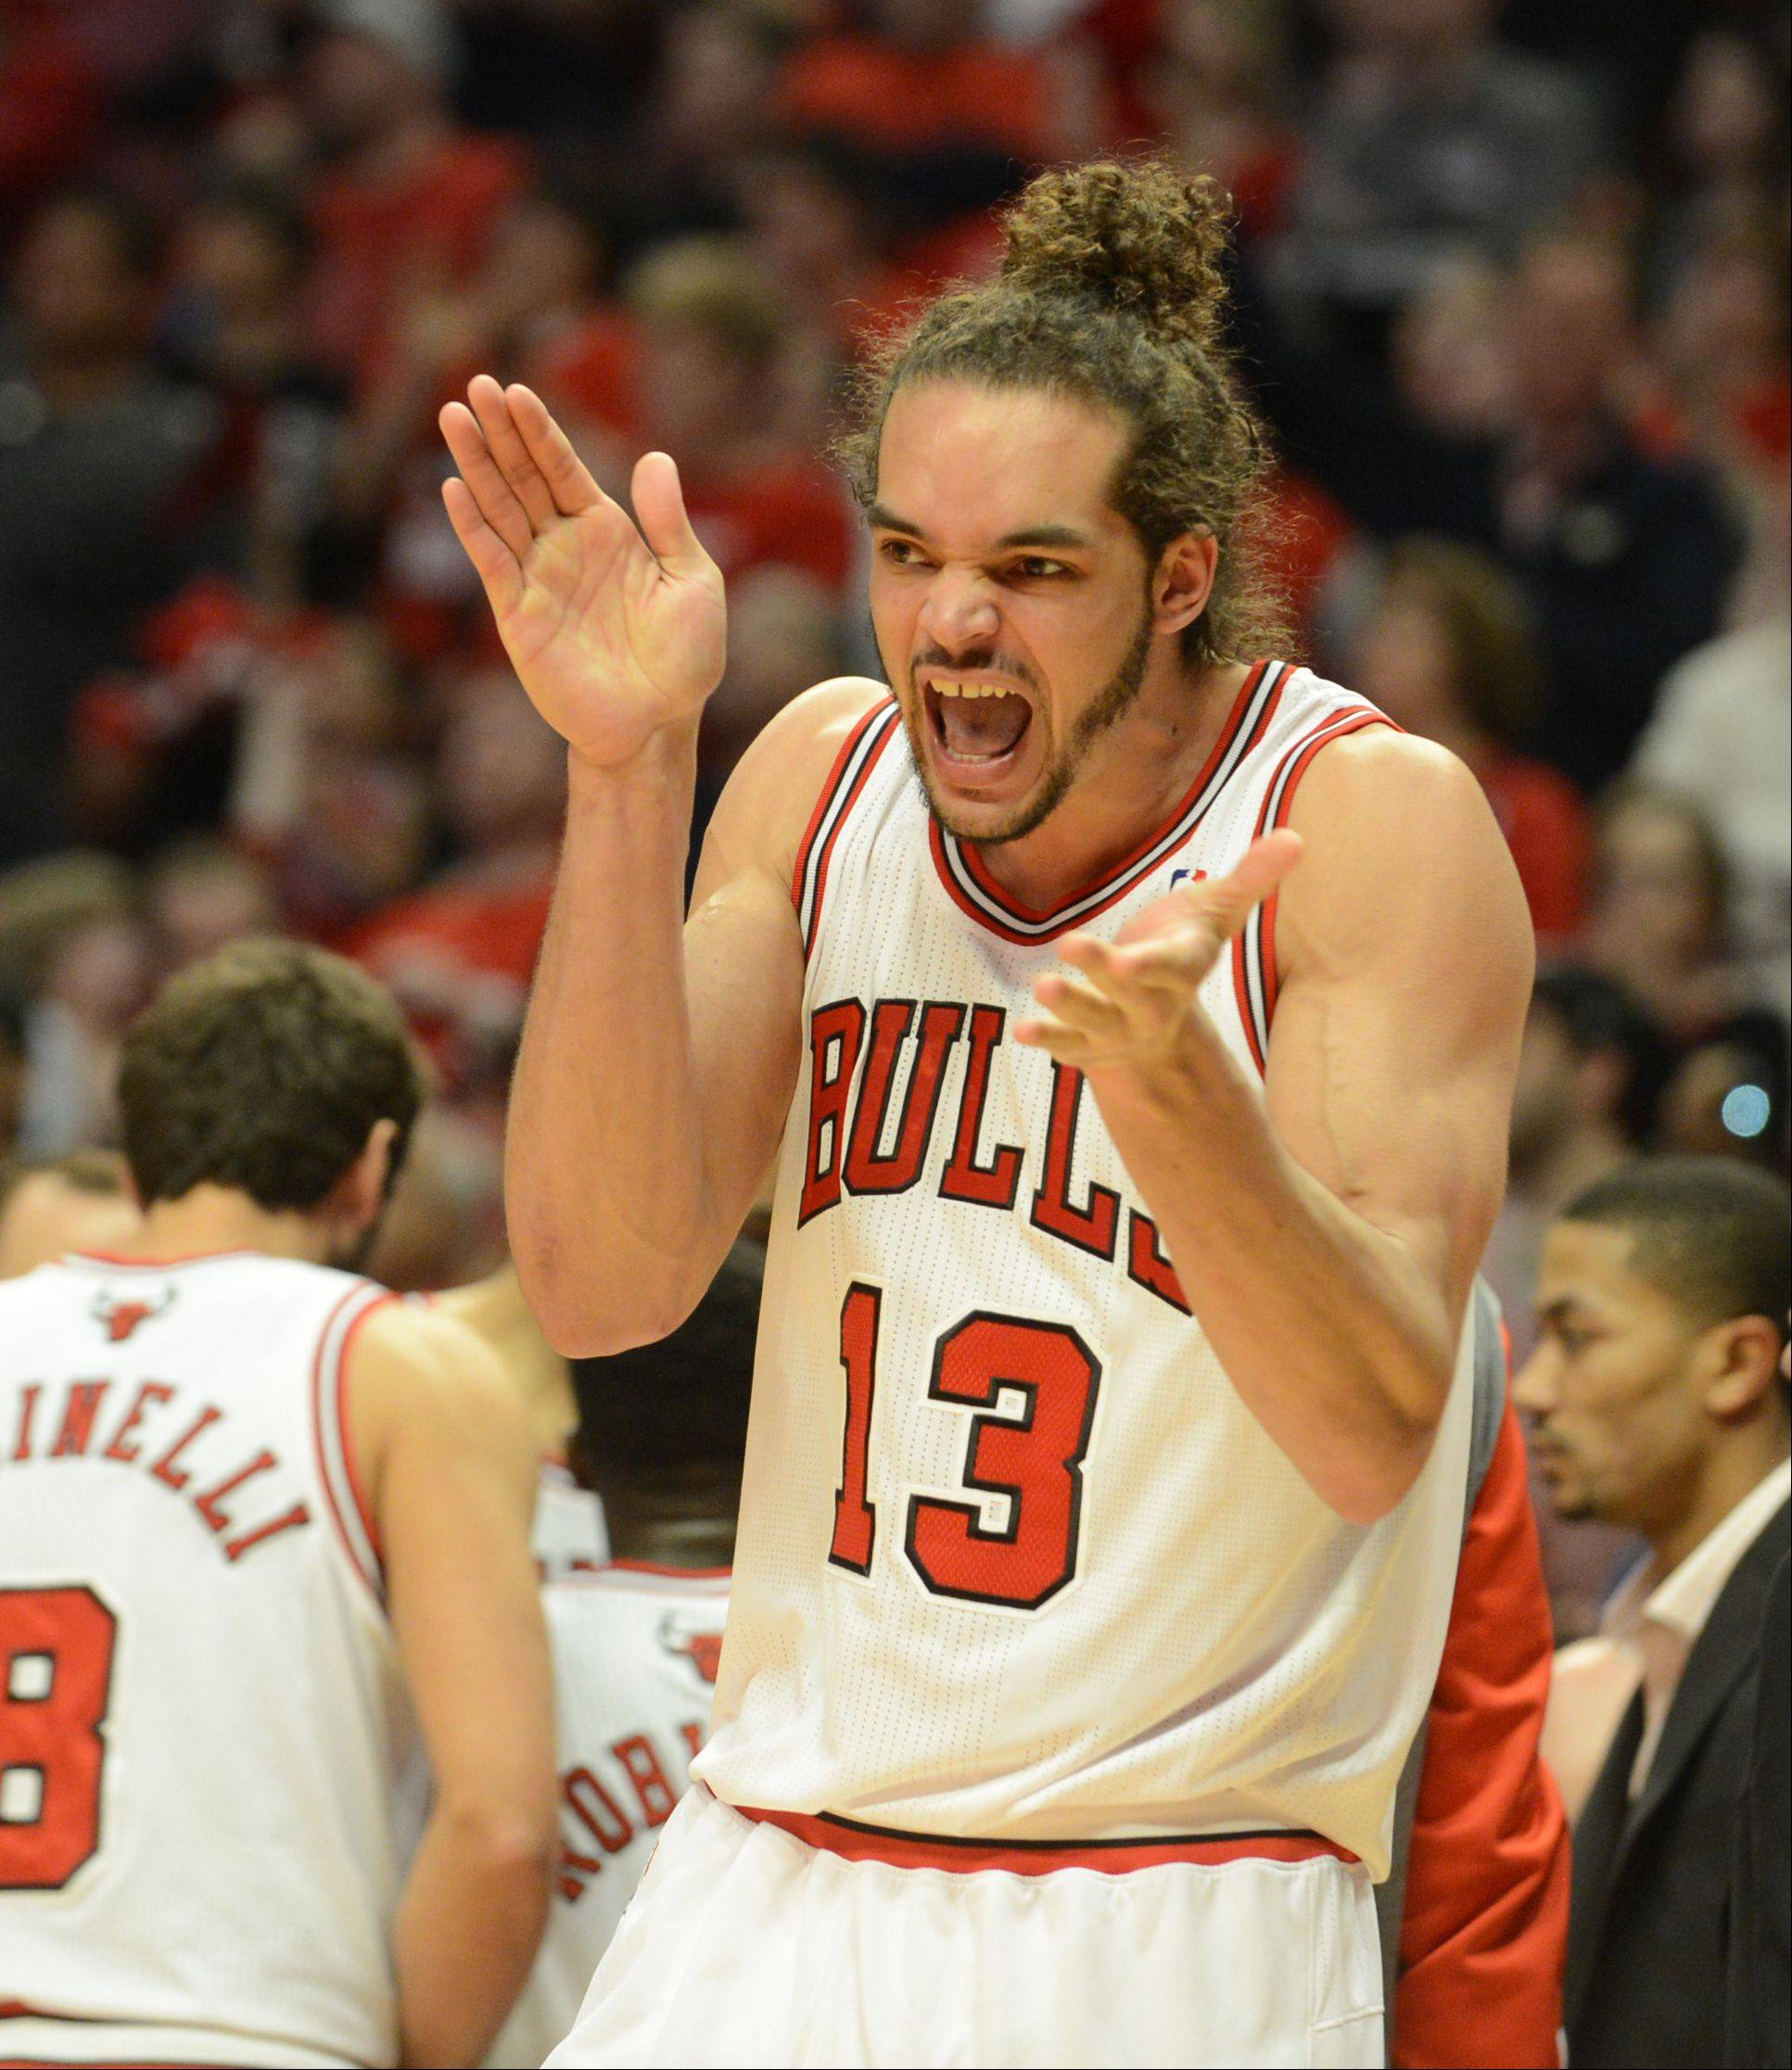 Joakim Noah gets the crowd going during the second quarter Saturday during game 4 of the first round playoff game against the Brooklyn Nets at the United Center. The Bulls won in triple overtime 142-134